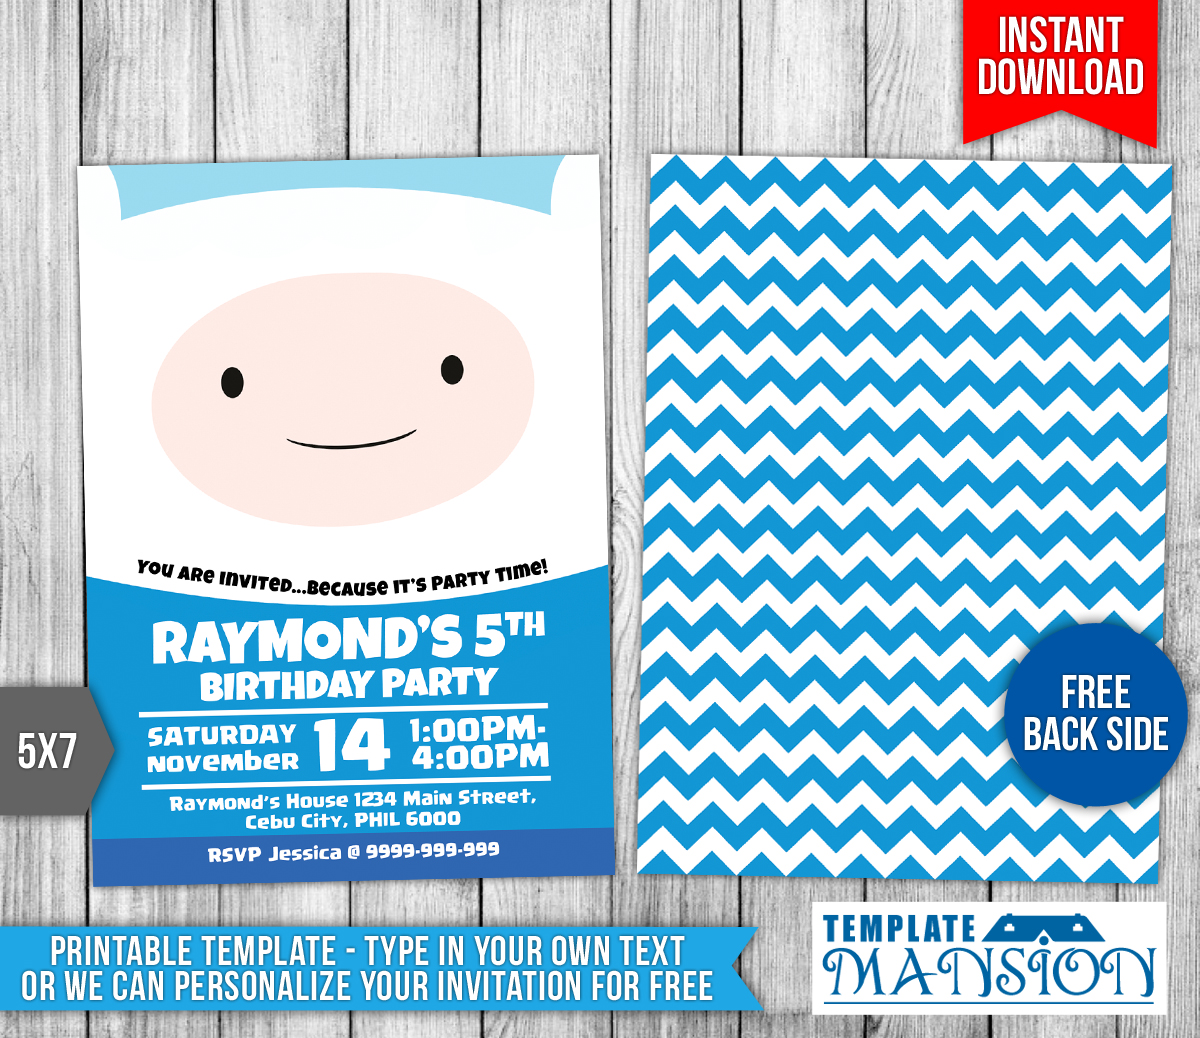 Adventure Time Birthday Invitation Template By Templatemansion On - 5x7 birthday invitation template